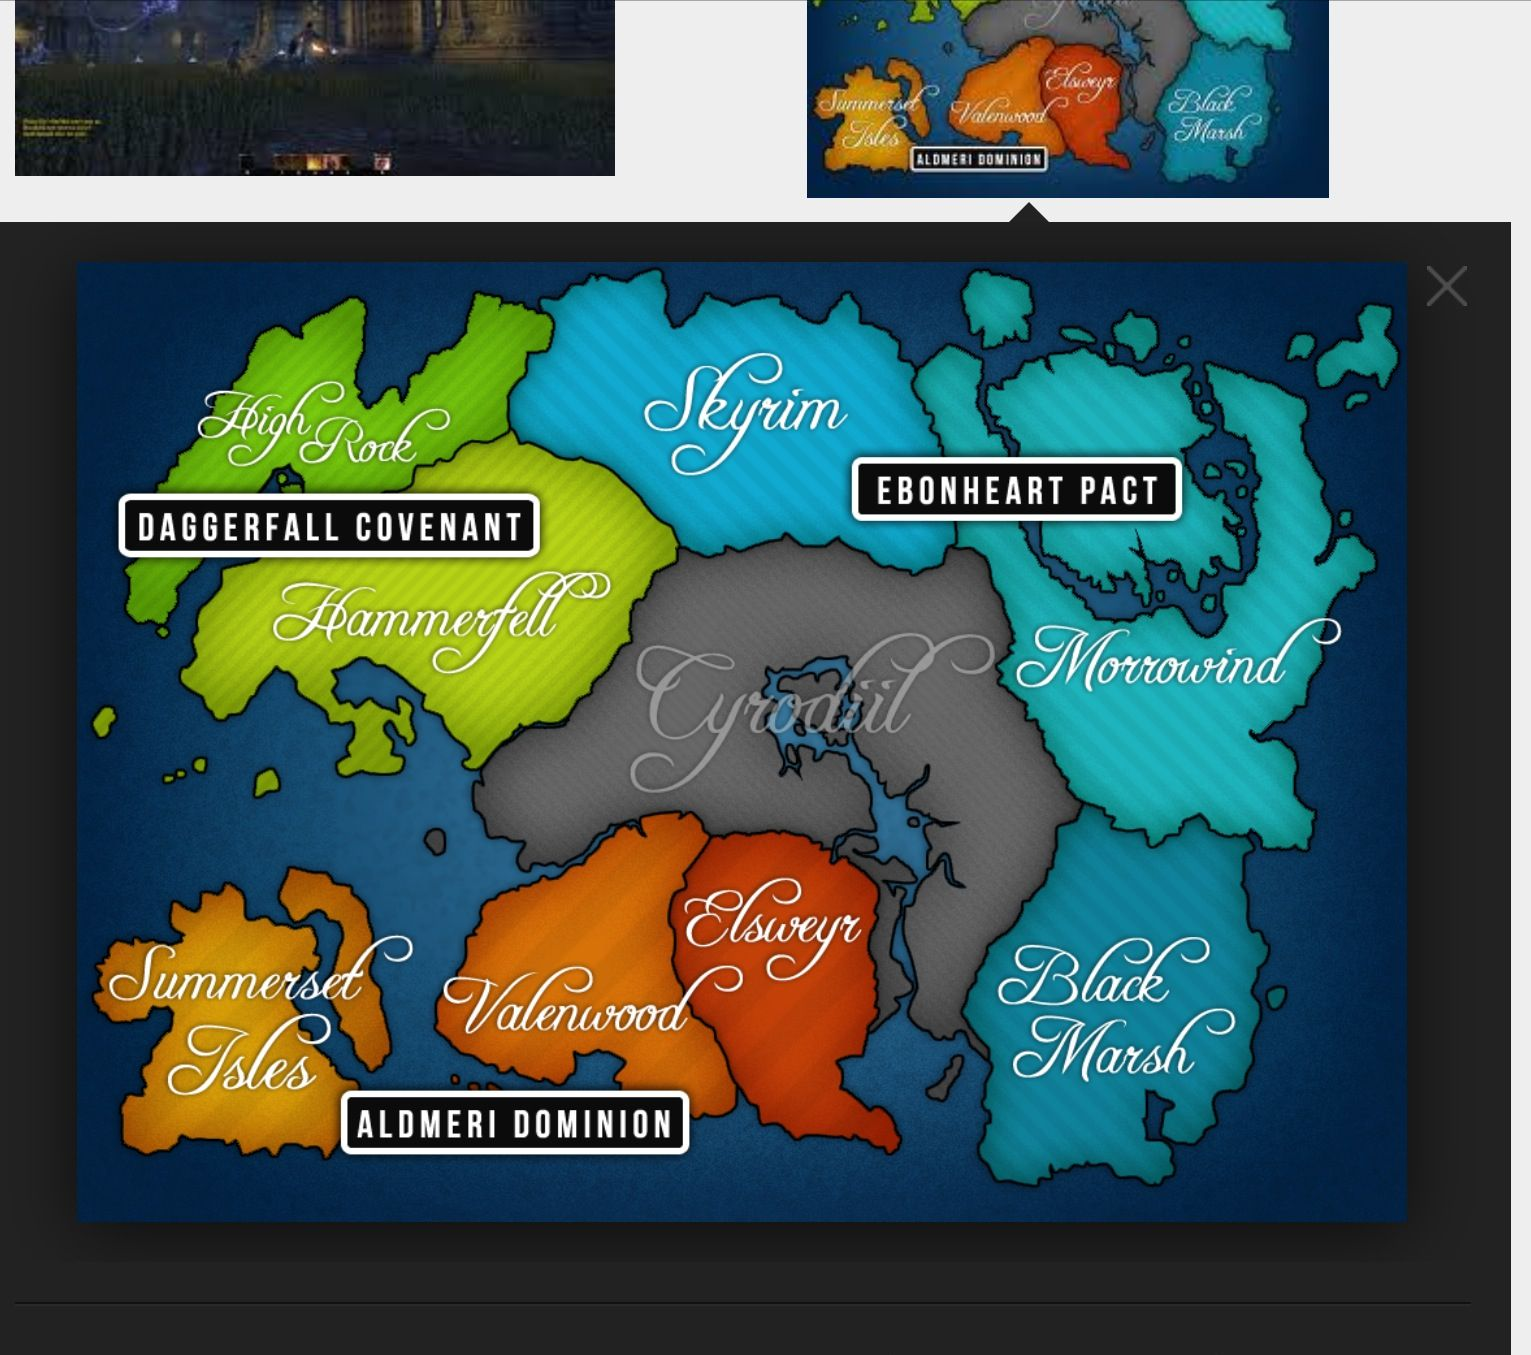 This Is The Elder Scrolls Online Map With The Different Alliance - Live map online